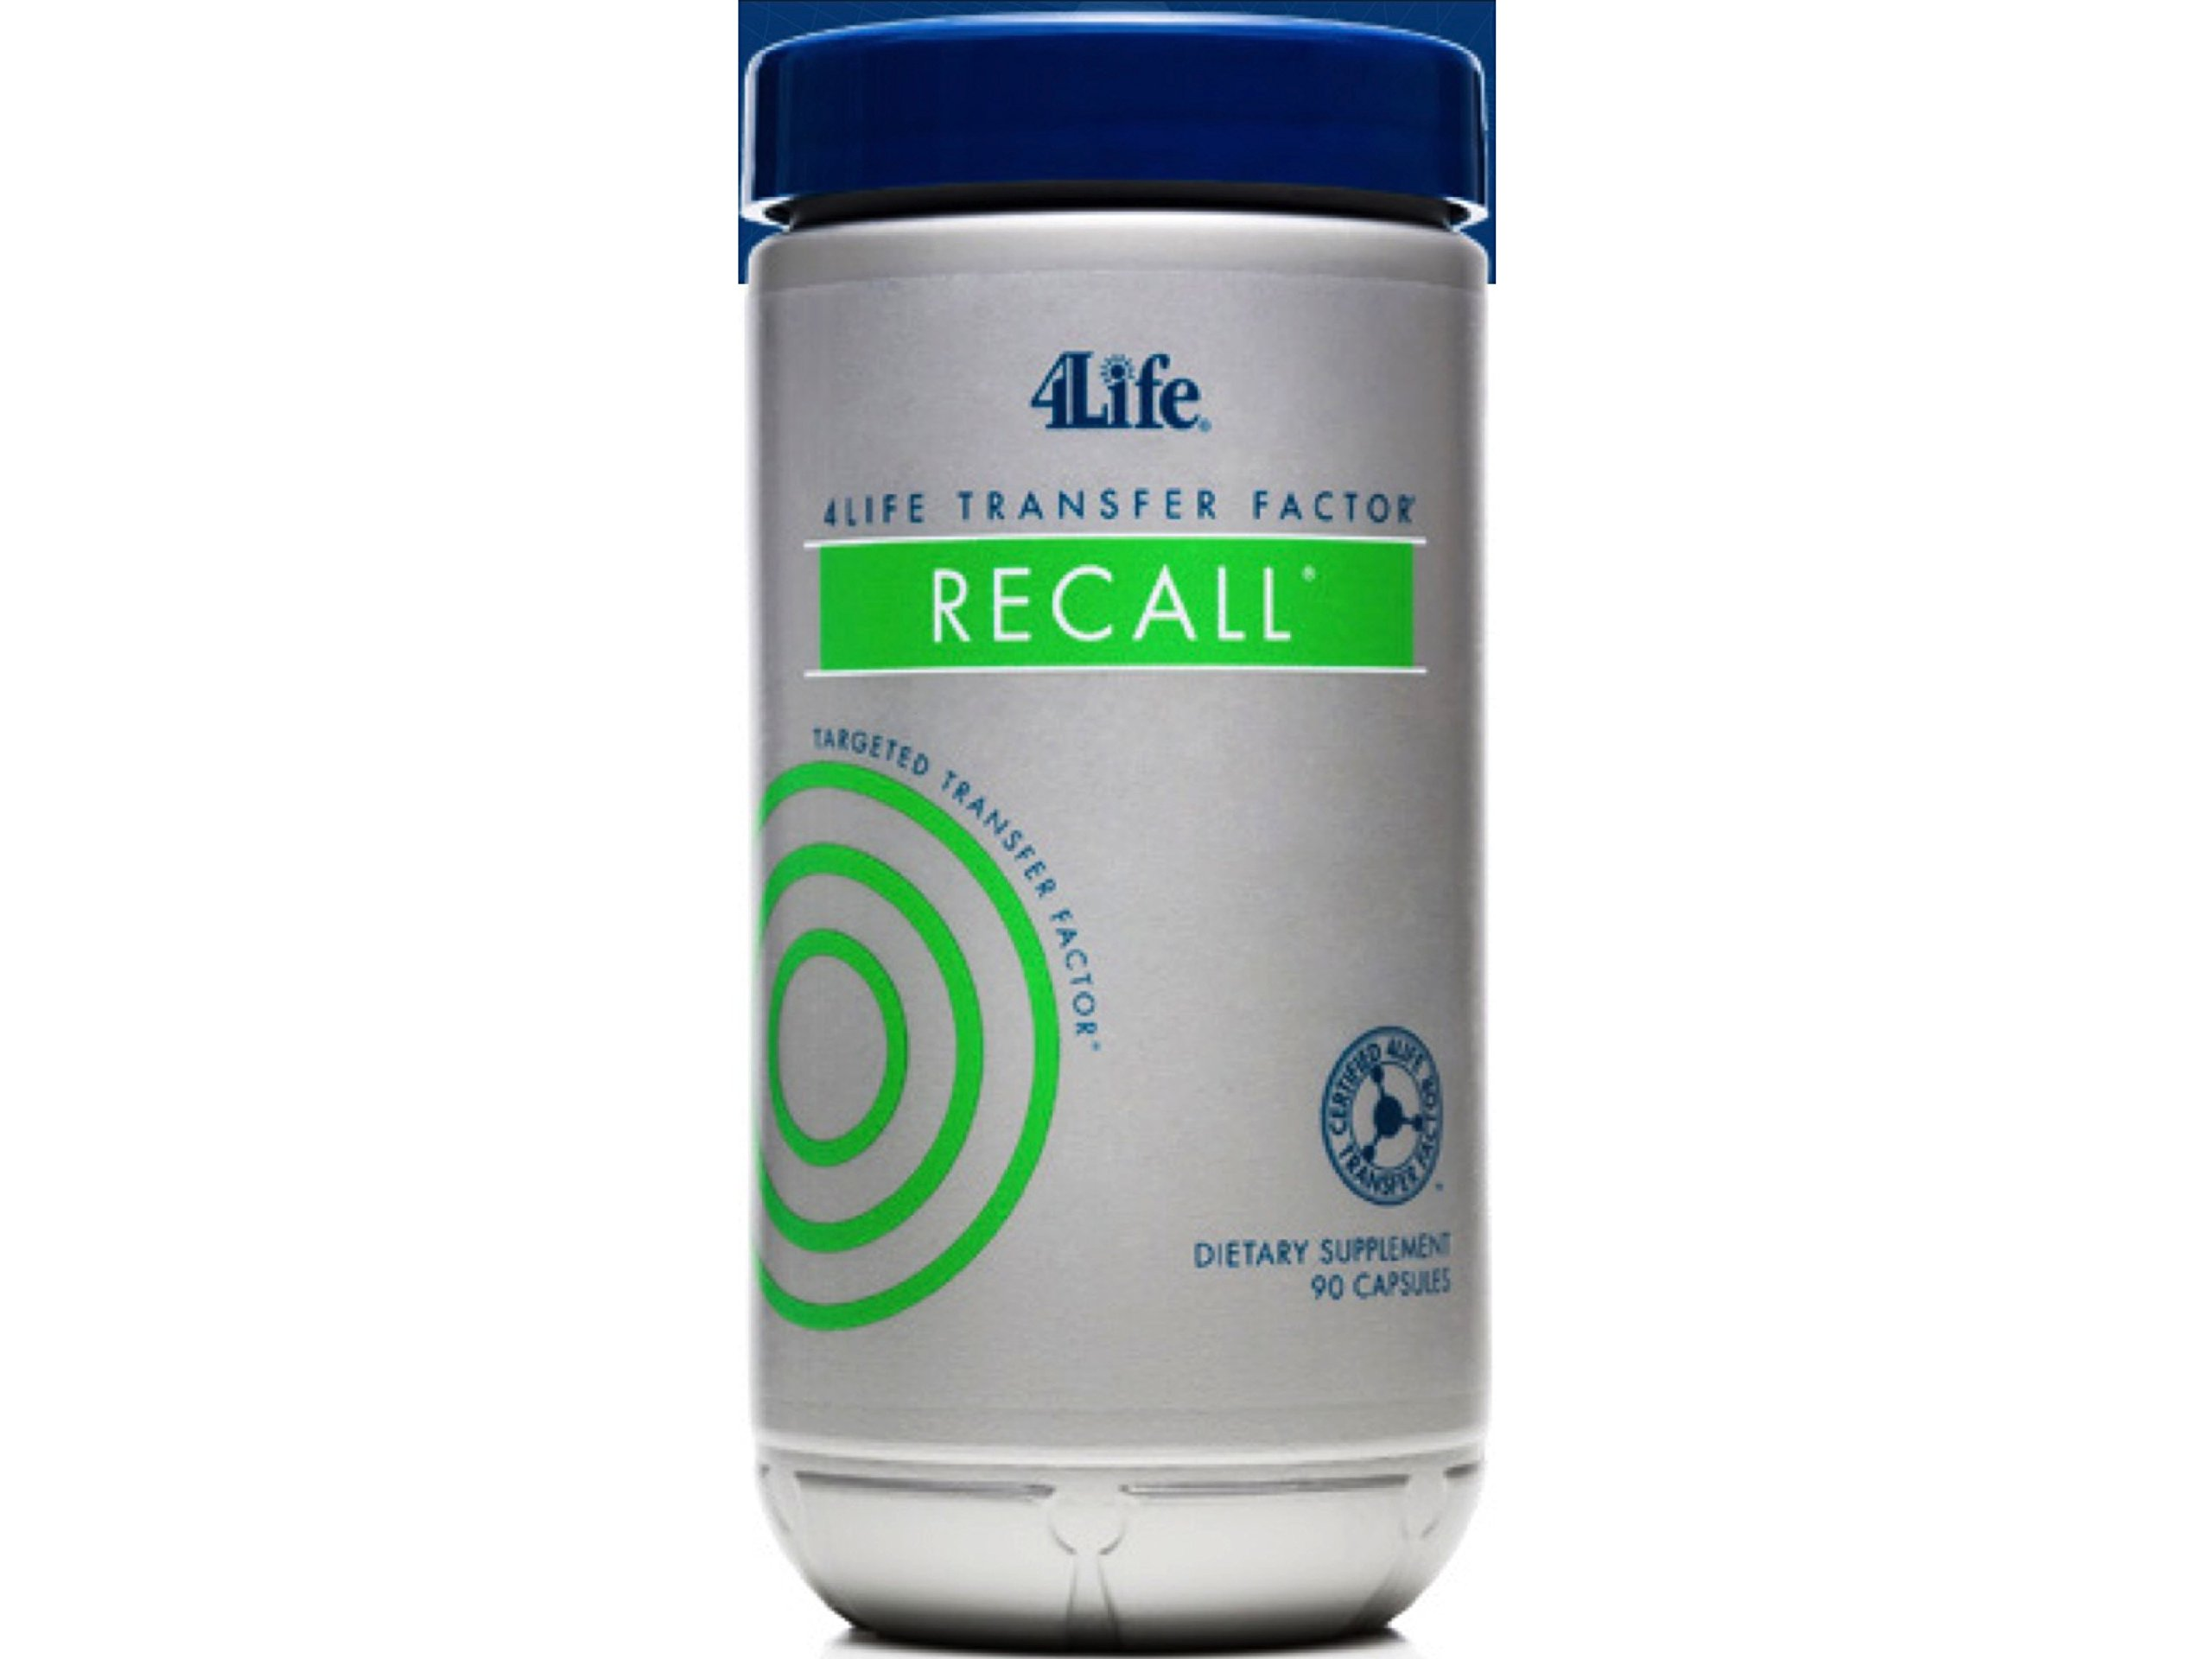 4Life Transfer Factor ReCall by 4Life - 90 ct/bottle